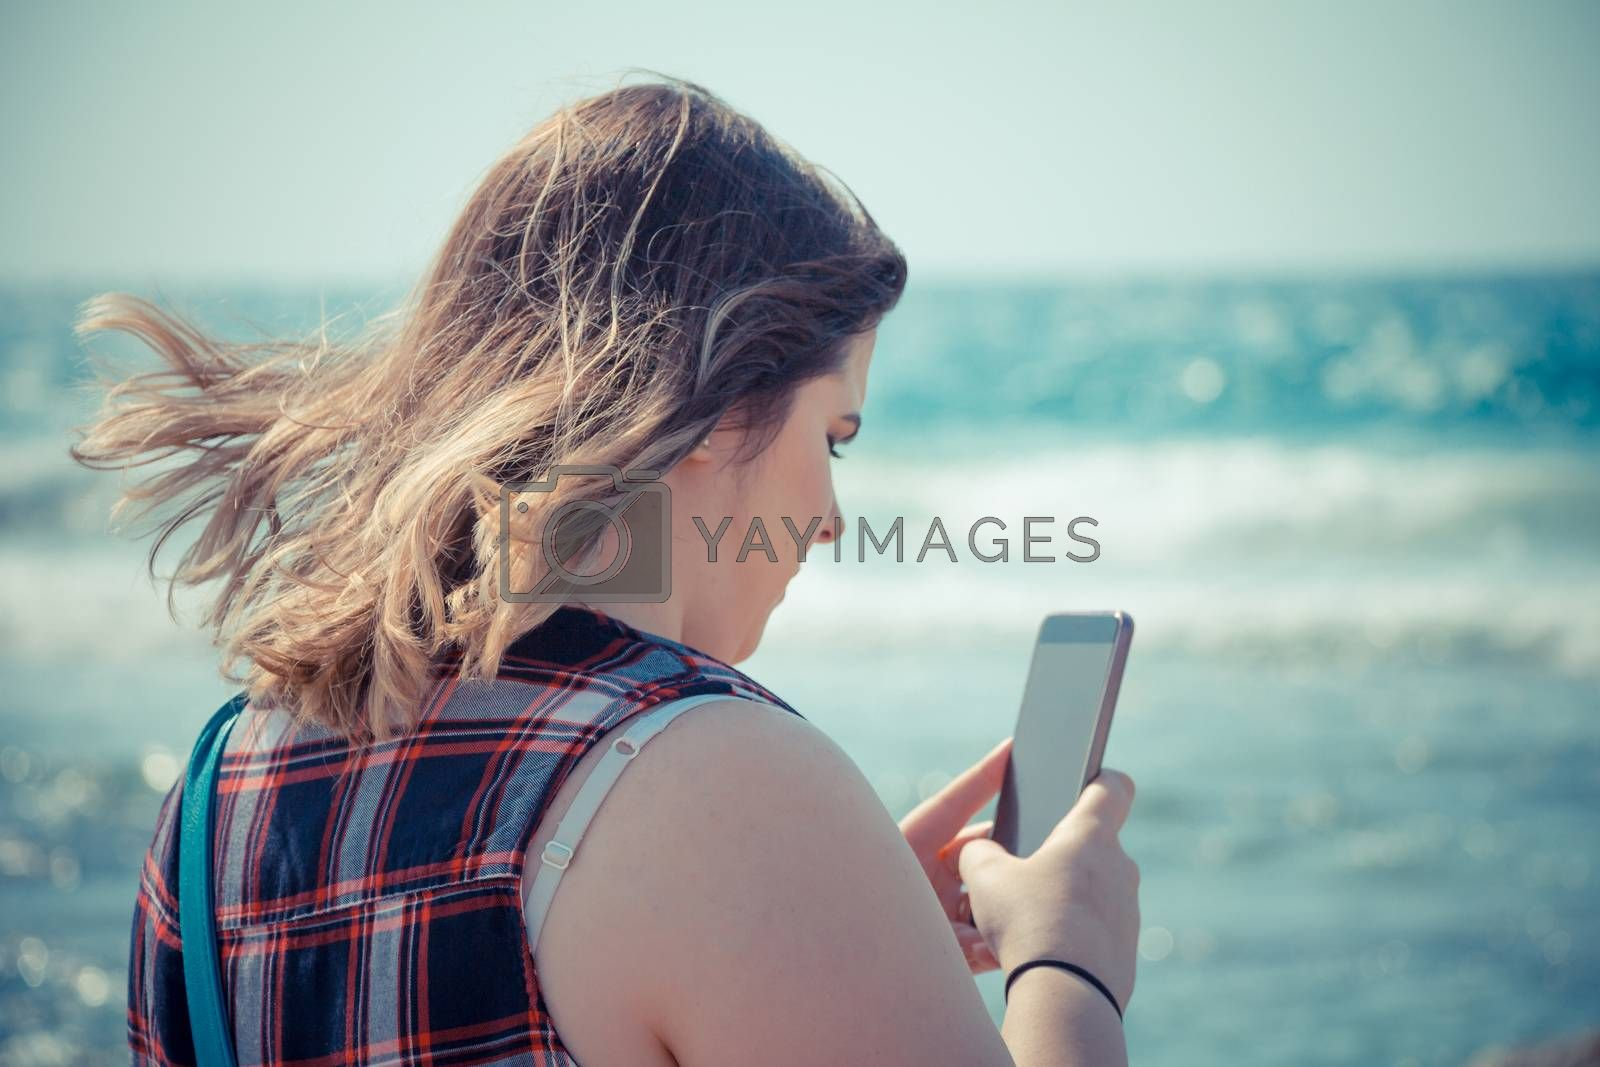 Woman using her smartphone outdoors at the beach near the sea by wavemovies